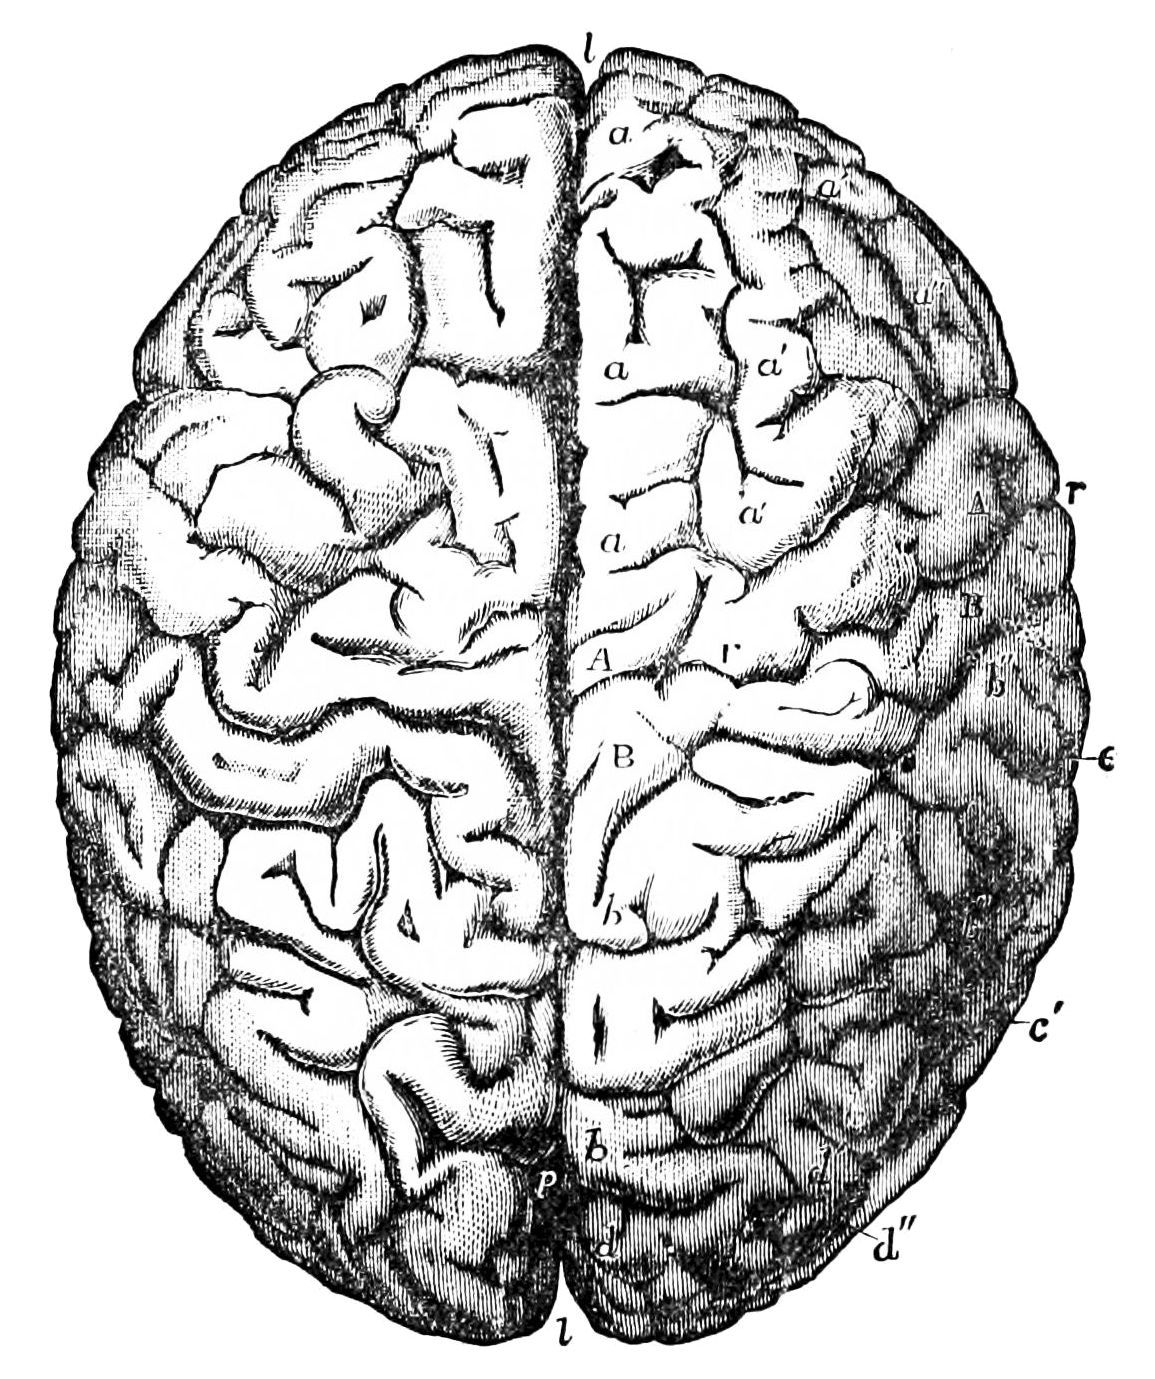 Brain drawing at getdrawings free for personal use brain 1155x1379 reduction the brains blog ccuart Images